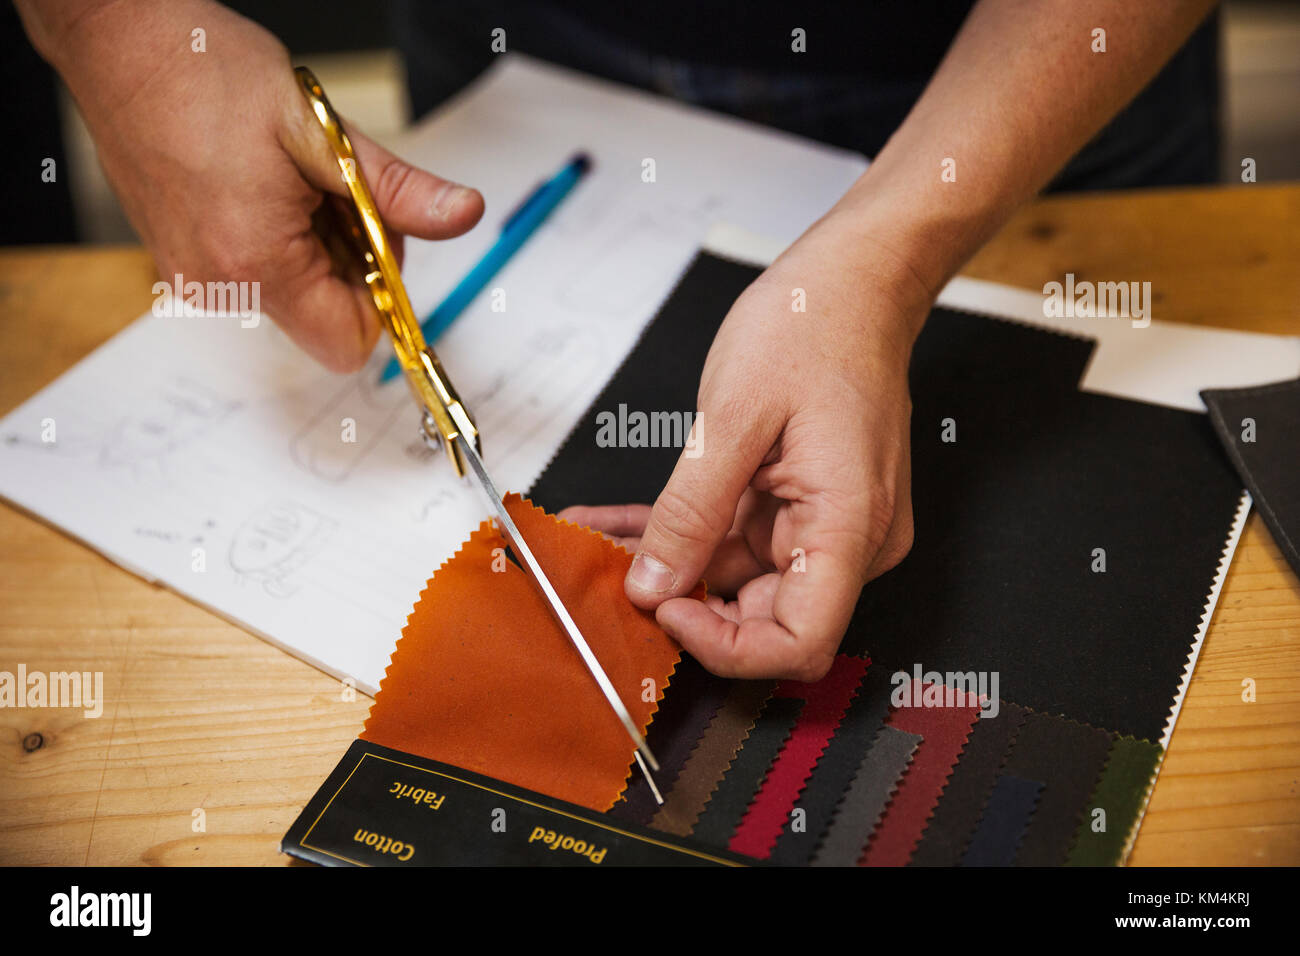 A person using shears to cut a fabric sample at a workbench, overhead view. - Stock Image